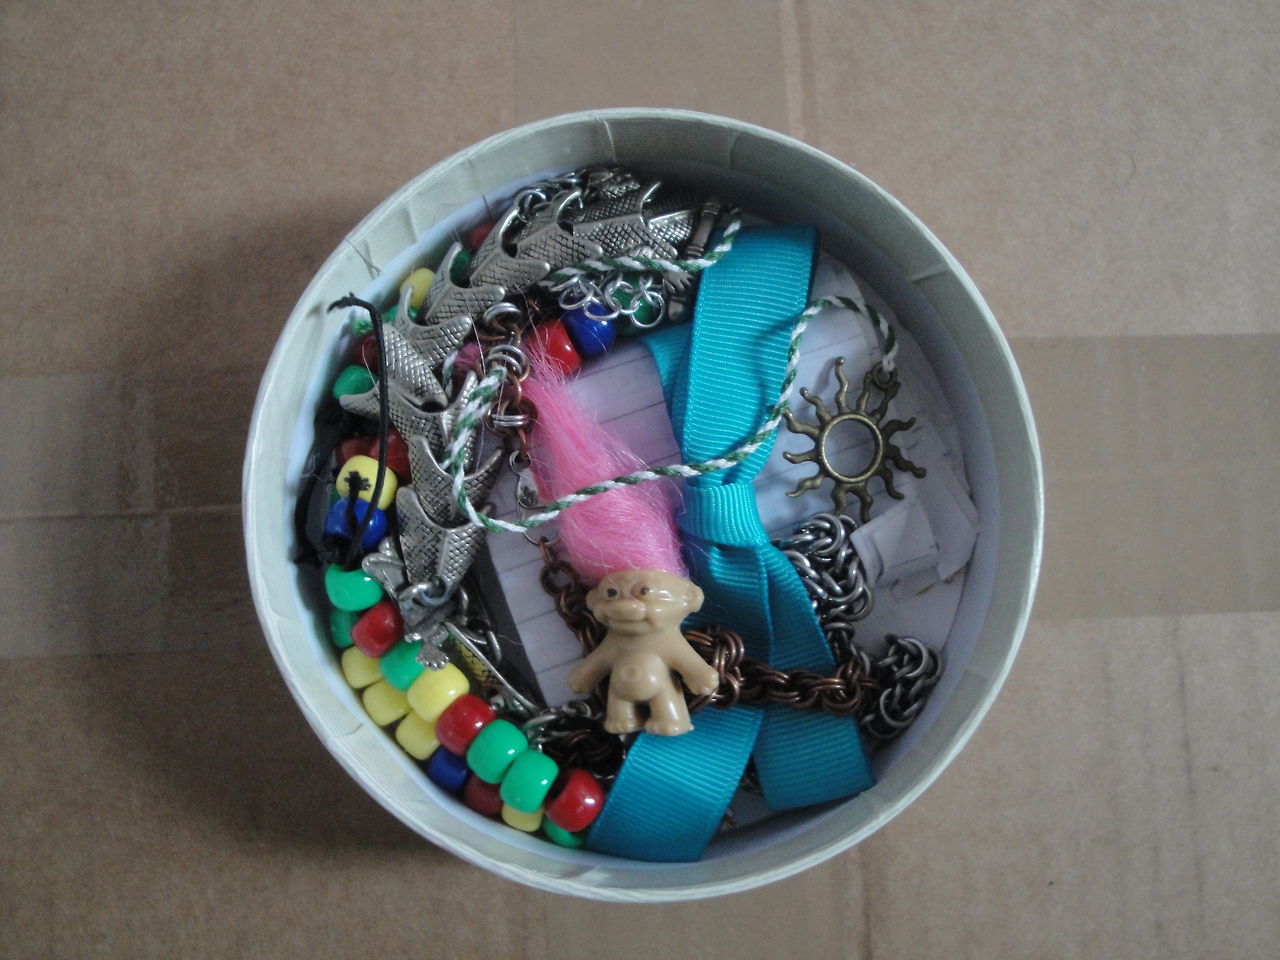 A small round box with assorted items inside, including bracelets, a ribbon, and a small troll doll.